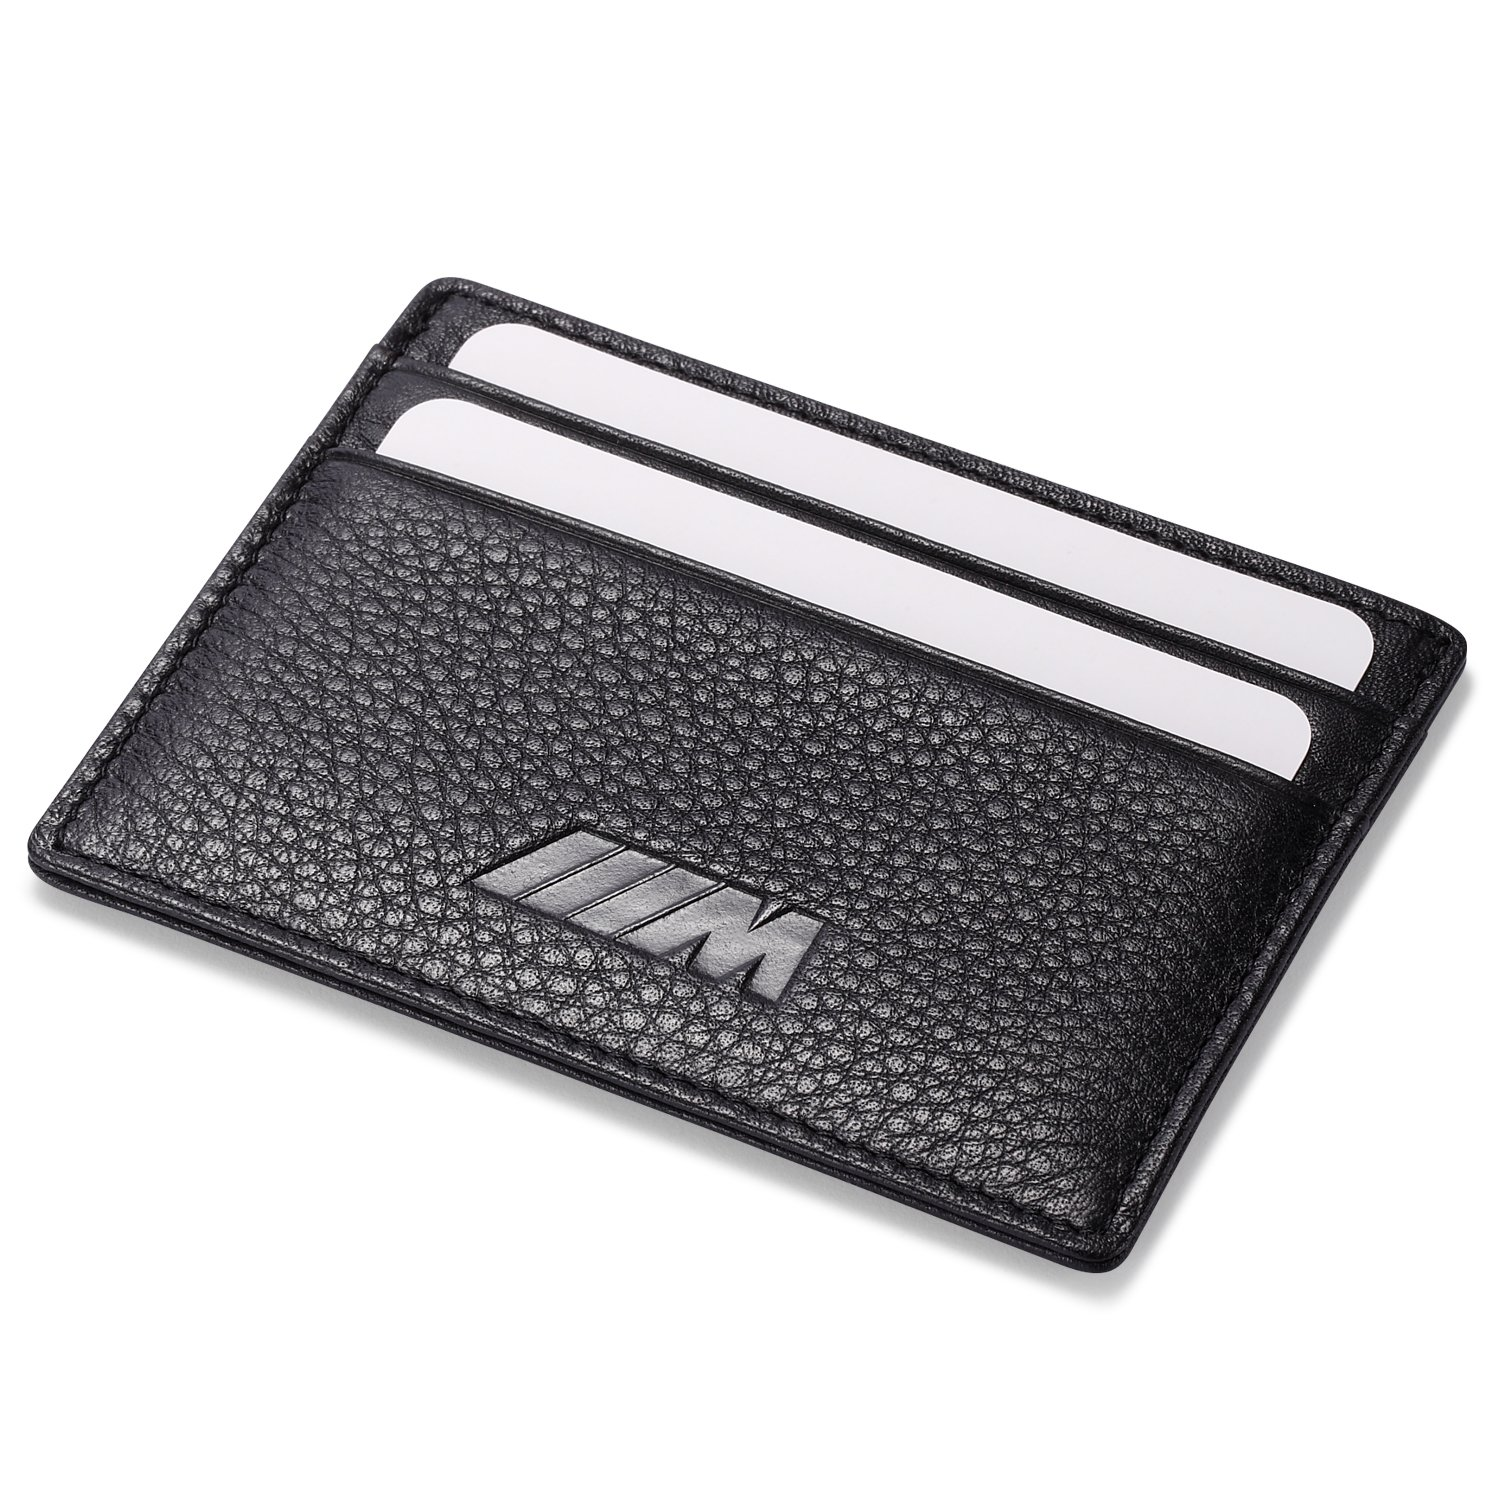 ///M BMW Slim Wallet Black with 4 Credit Card Slots - Genuine Leather Leather Wallets